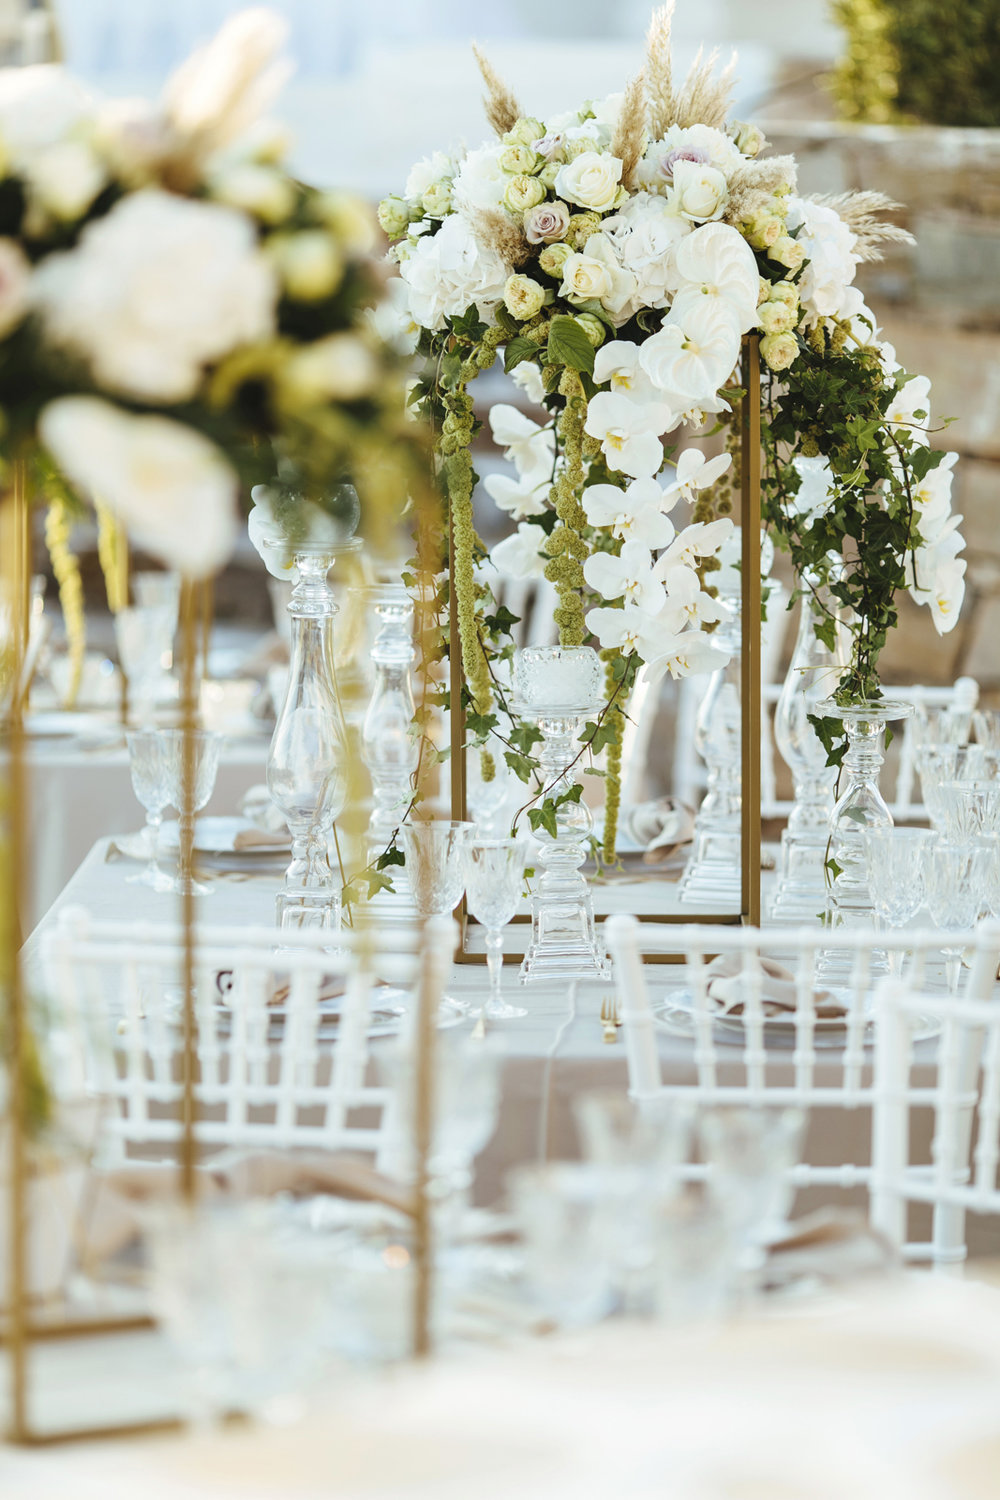 wedding-planning-silkentile-kythnos-island-greece-luxury-destination-luxury-gold-blush-beach-sunset-party-ceremony-love-travels-wedding-dinner-table -party-artdelatable-crystal-tablescape-arrangement-centerpiece-flower-design